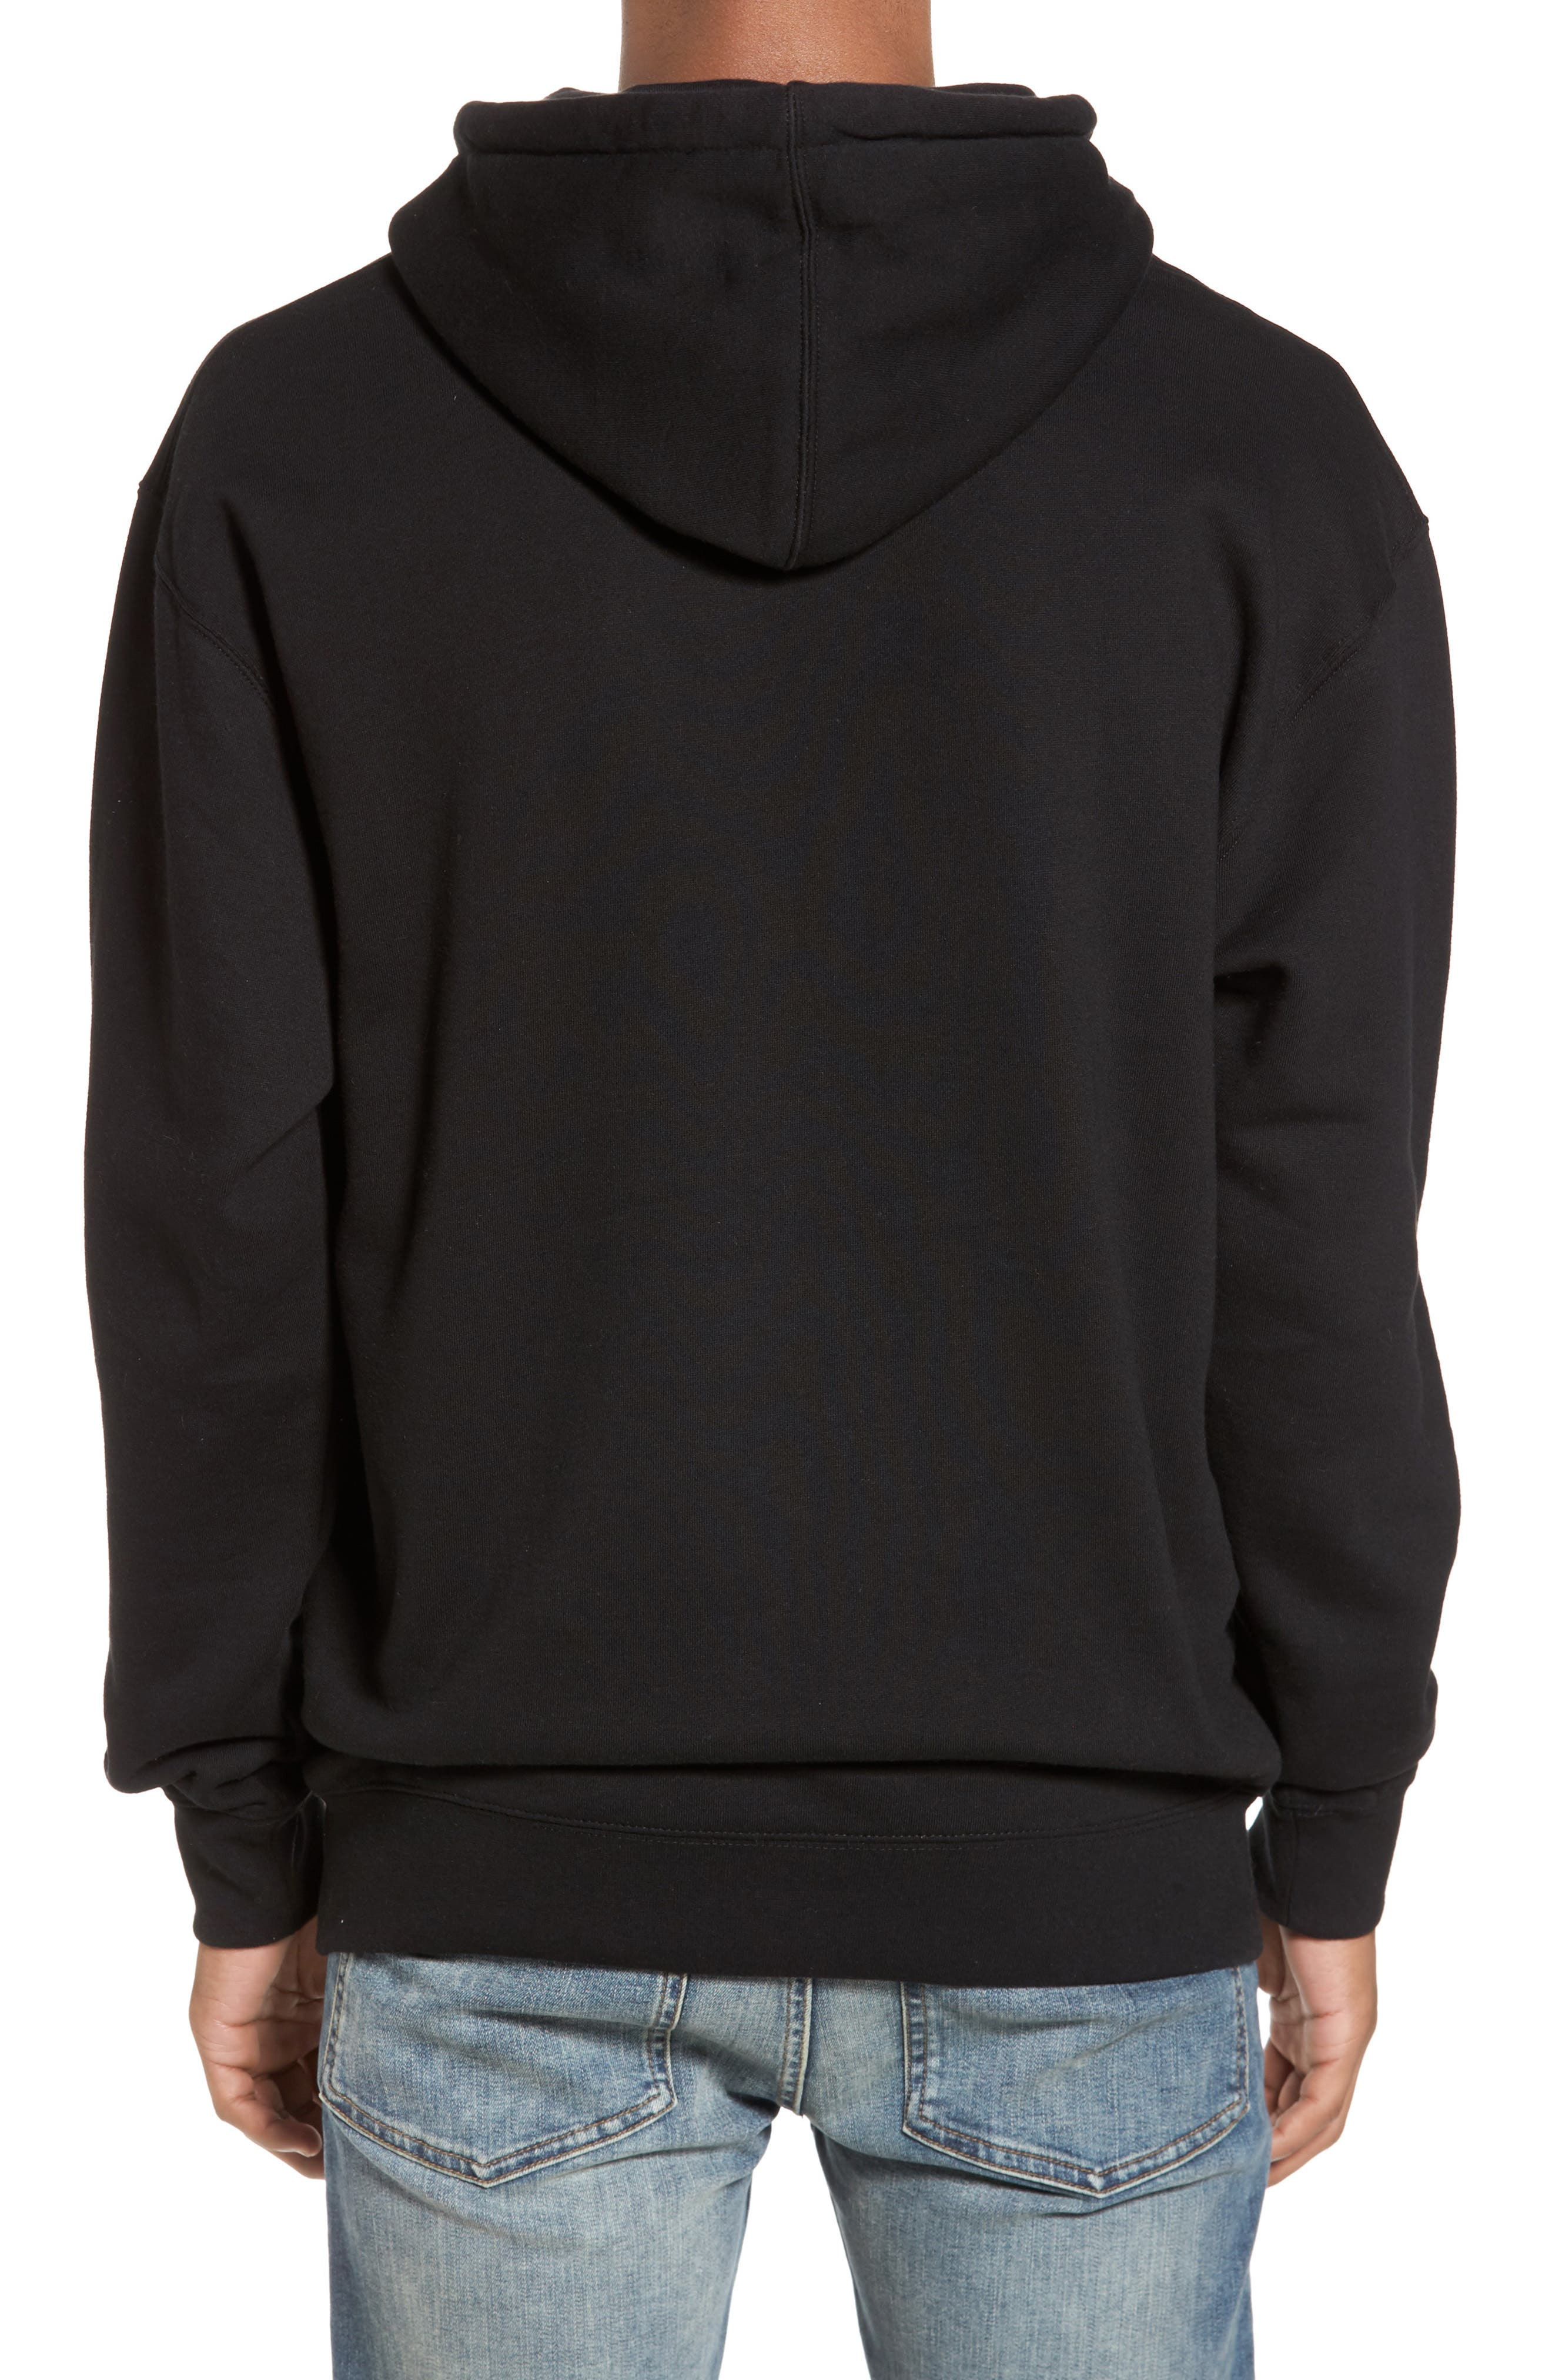 Johnny Tree above the Clouds Hoodie,                             Alternate thumbnail 2, color,                             Black